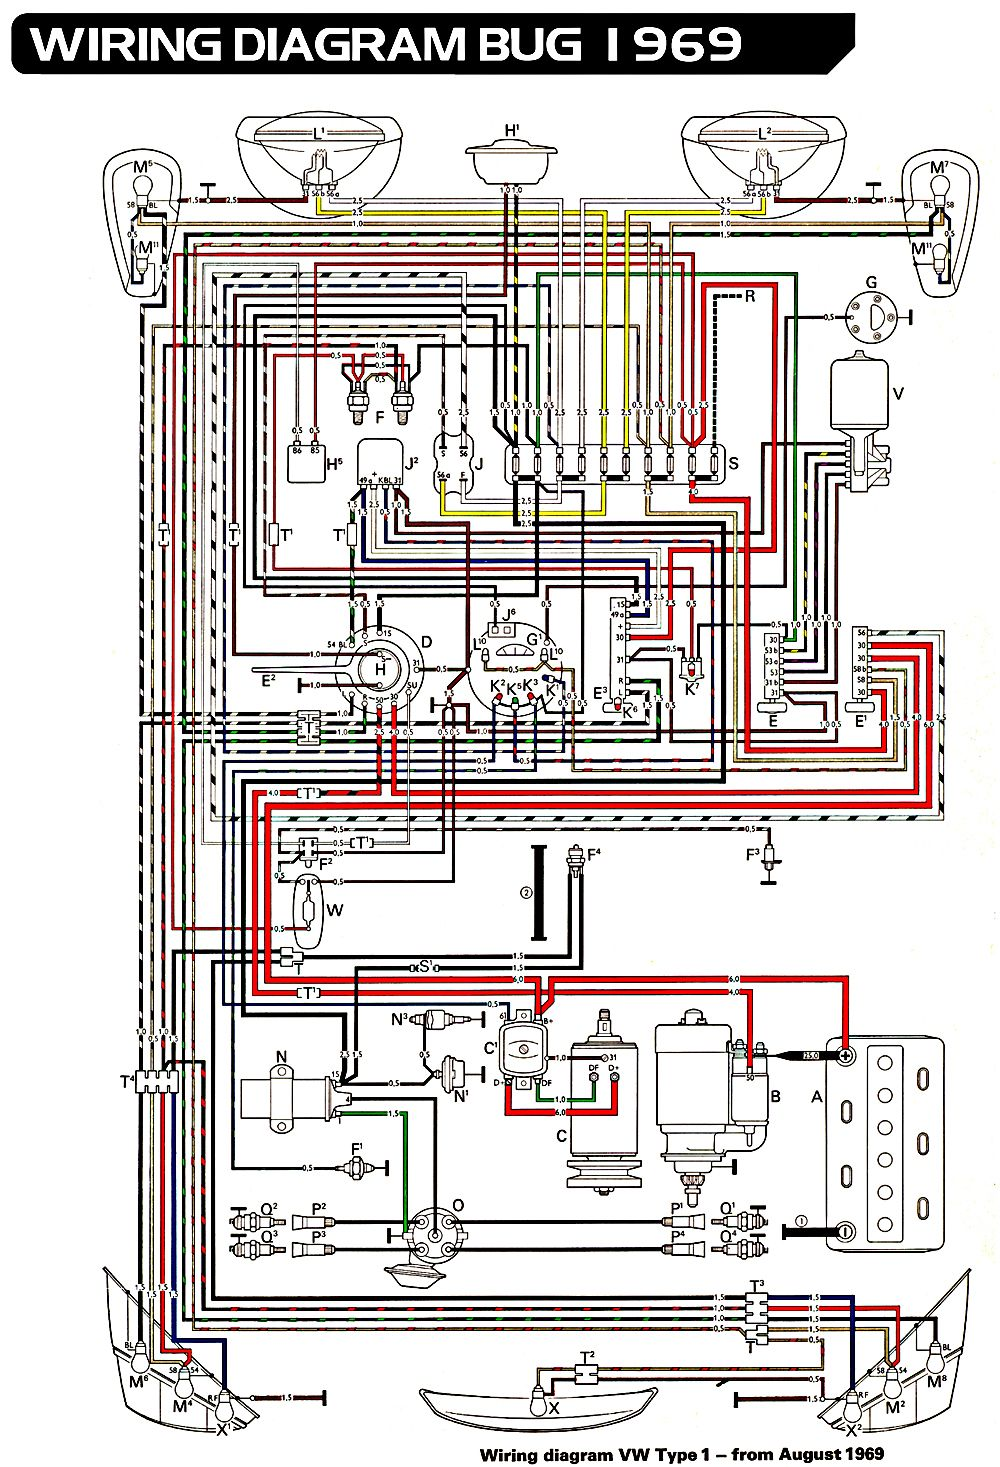 6d75c15875479254f26a32a8499d9044 volkswagen beetle wiring diagram 1966 vw beetle wiring vw wiring diagrams at gsmx.co